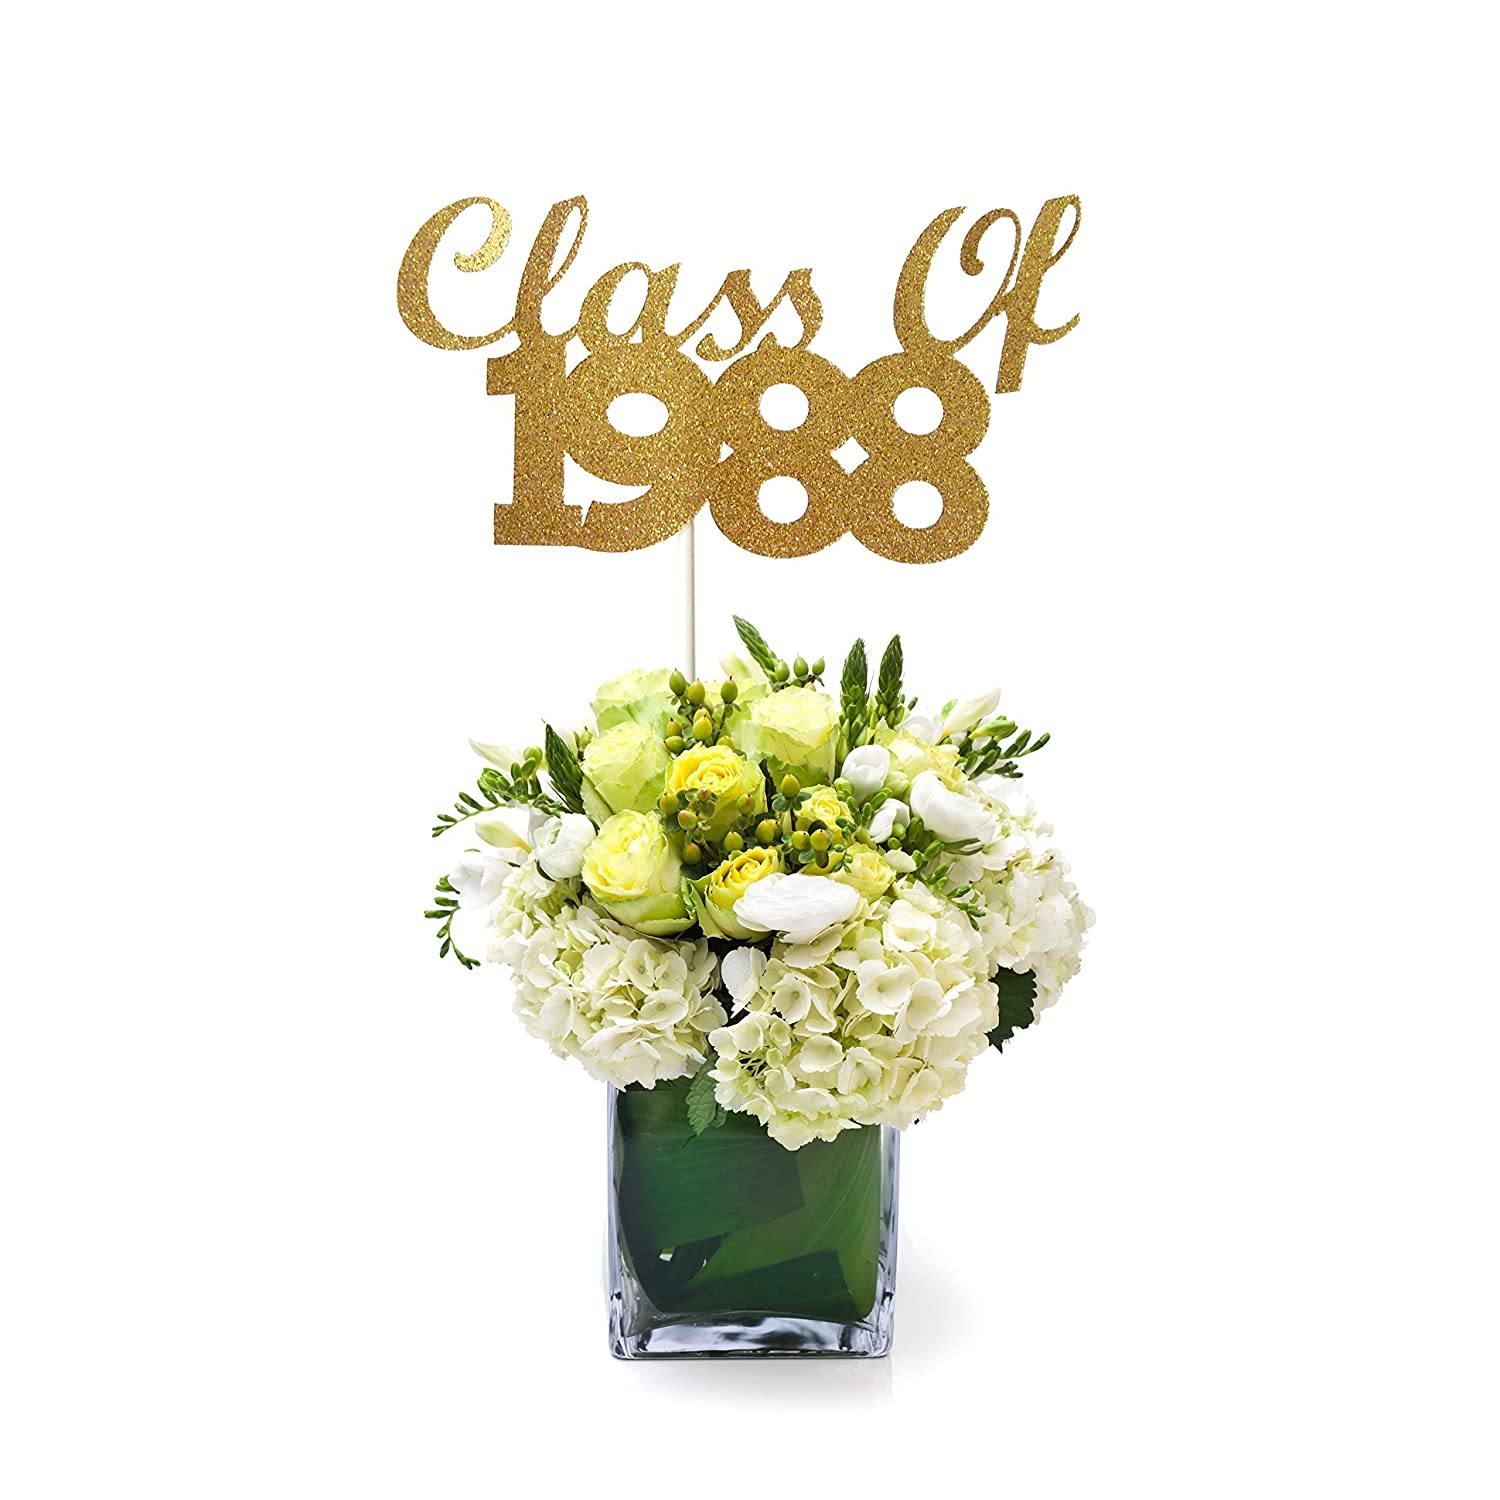 Class of 1988 Graduation Centerpiece Stick, 30th Class Reunion Centerpiece Stick